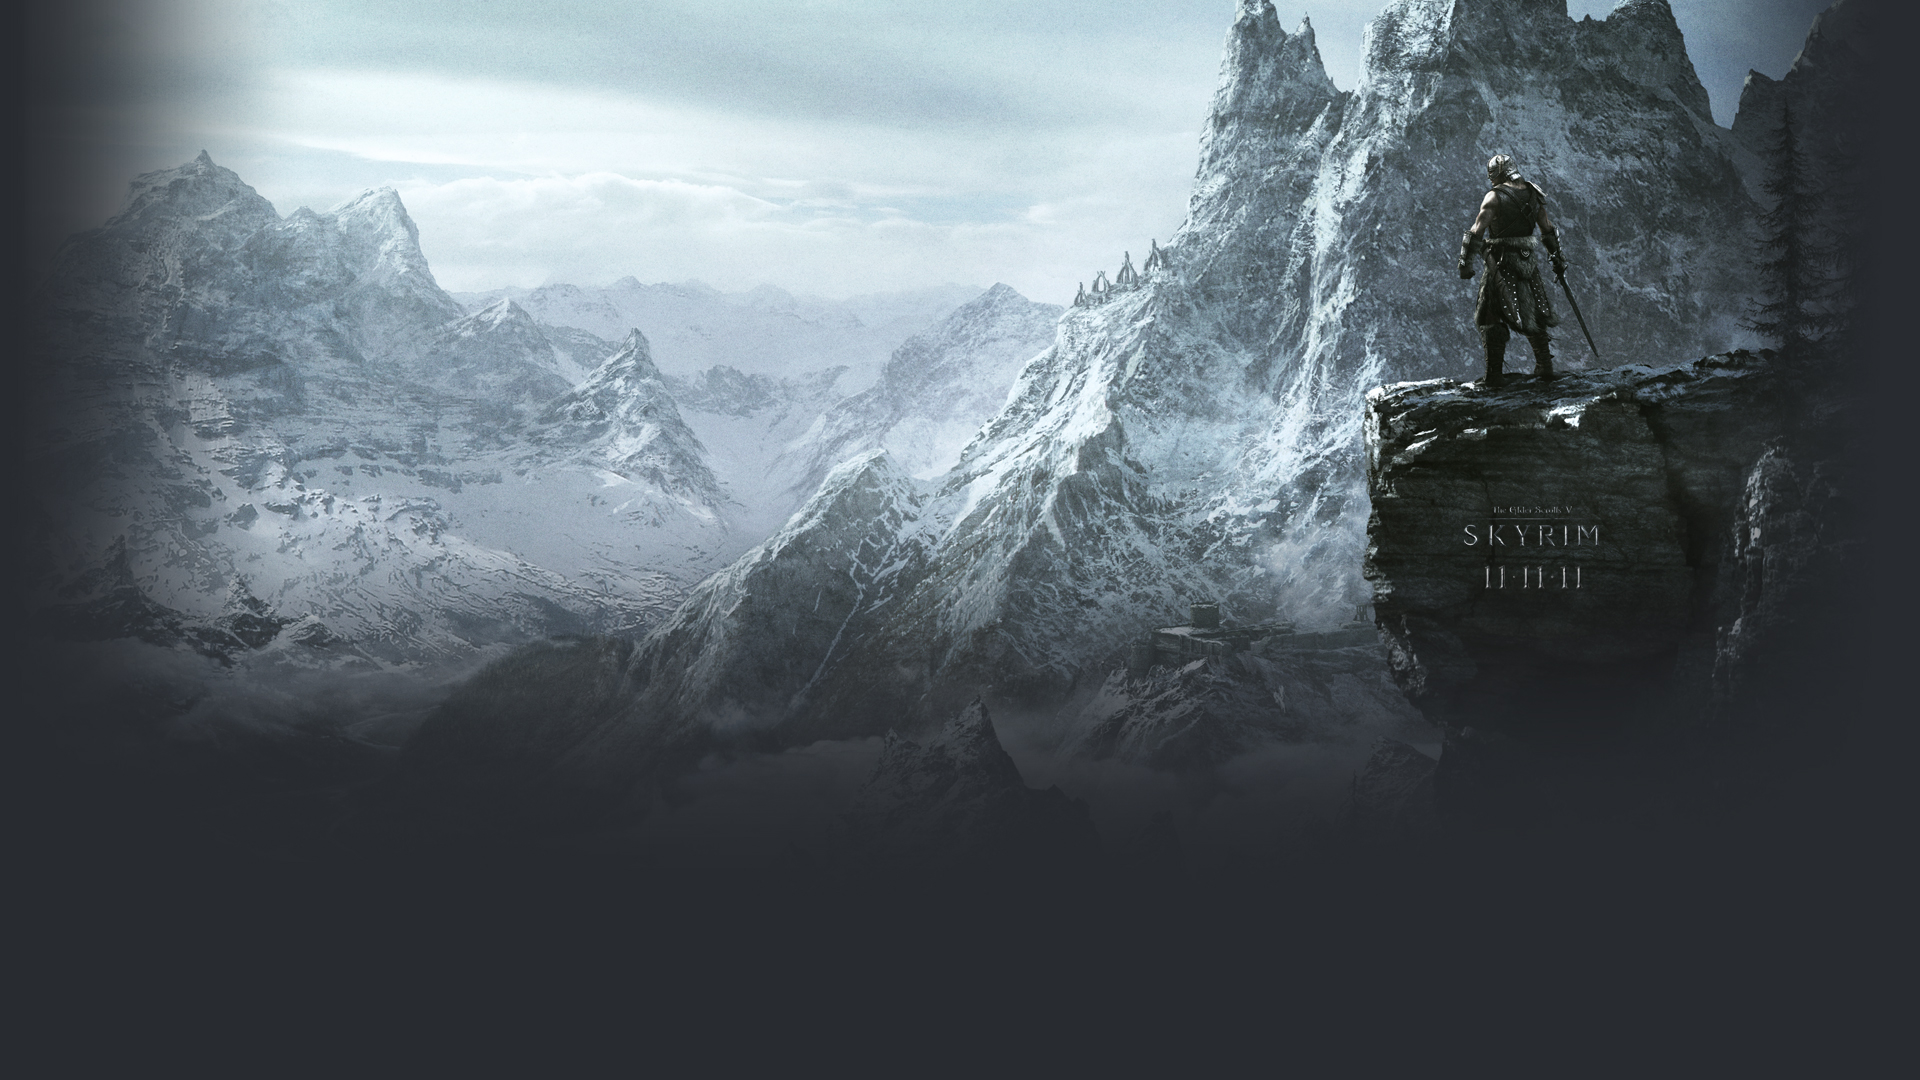 skyrim hd wallpaper 1920x1080 wallpapersafari